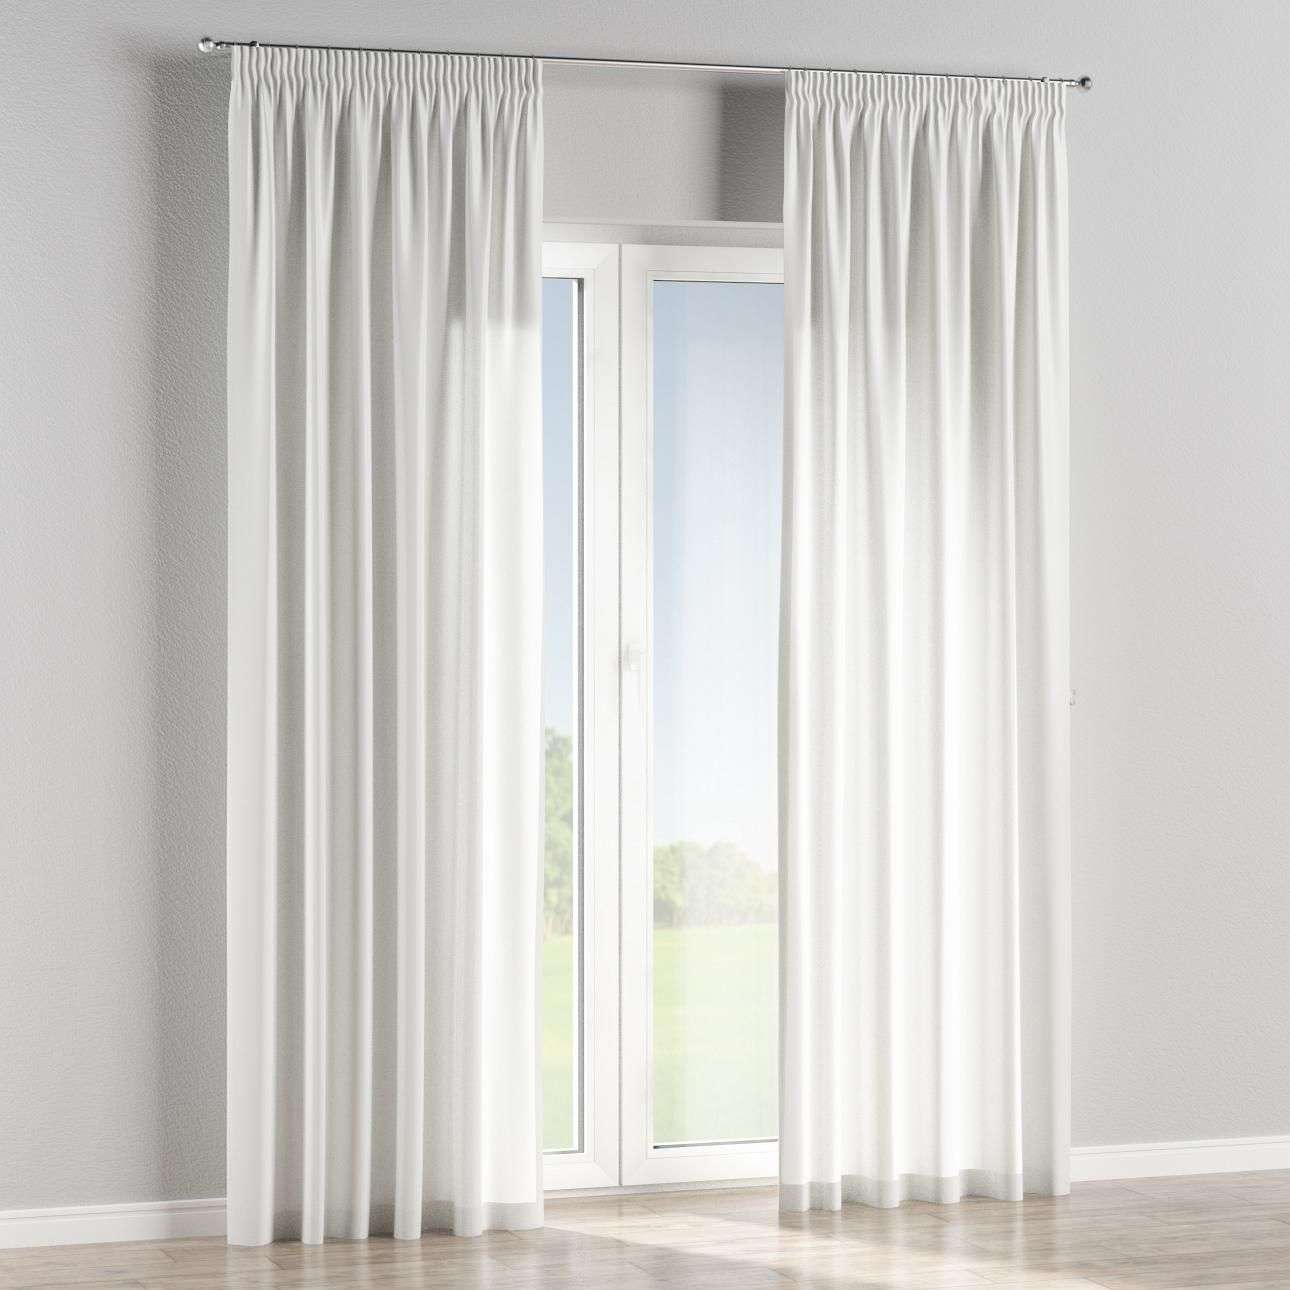 Pencil pleat curtains in collection Marina, fabric: 140-15